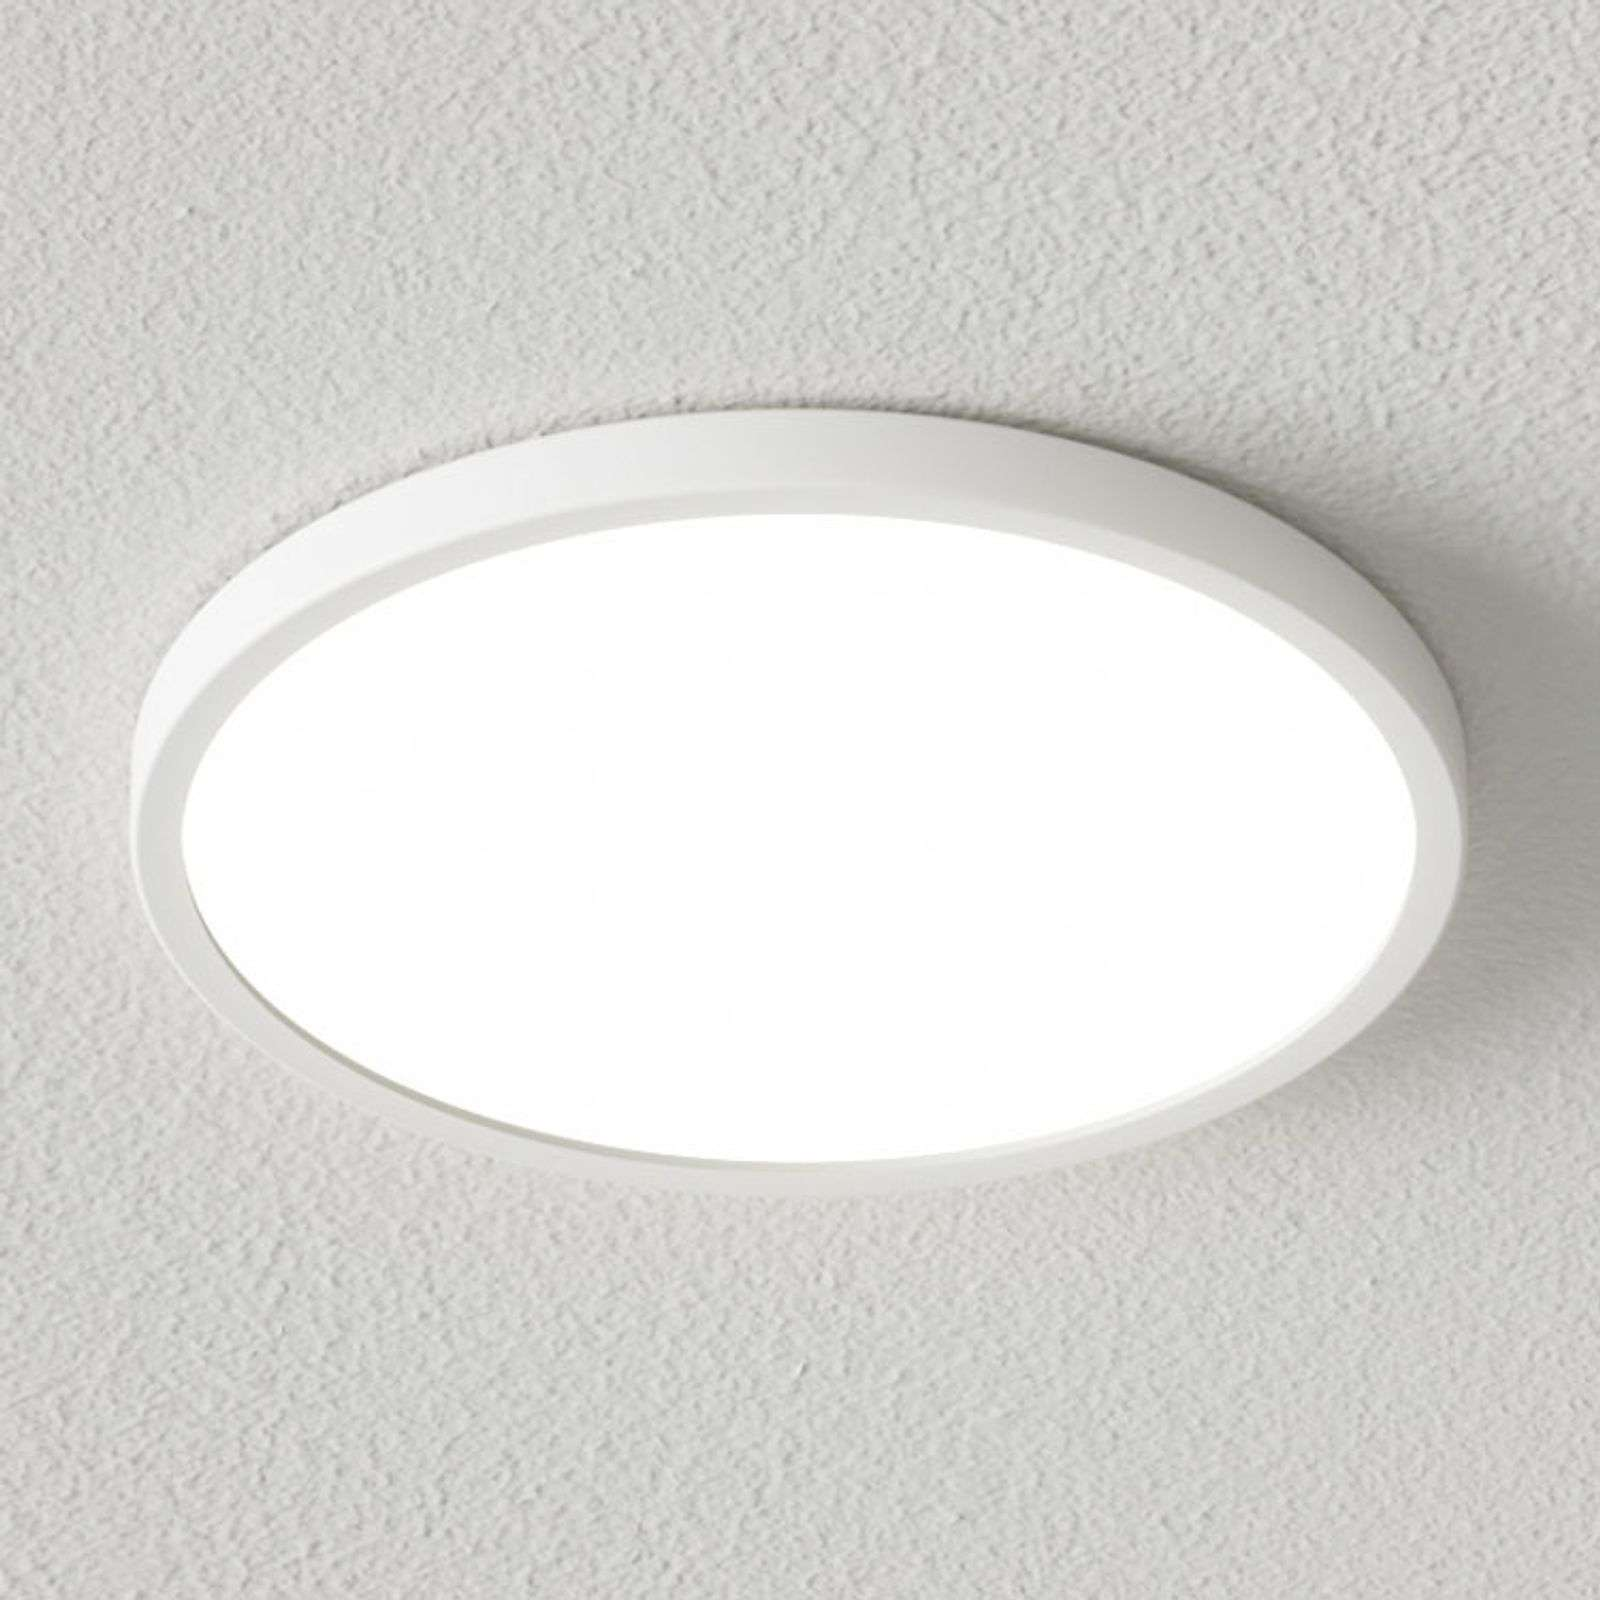 Plafonnier LED Solvie blanc, intensité variable